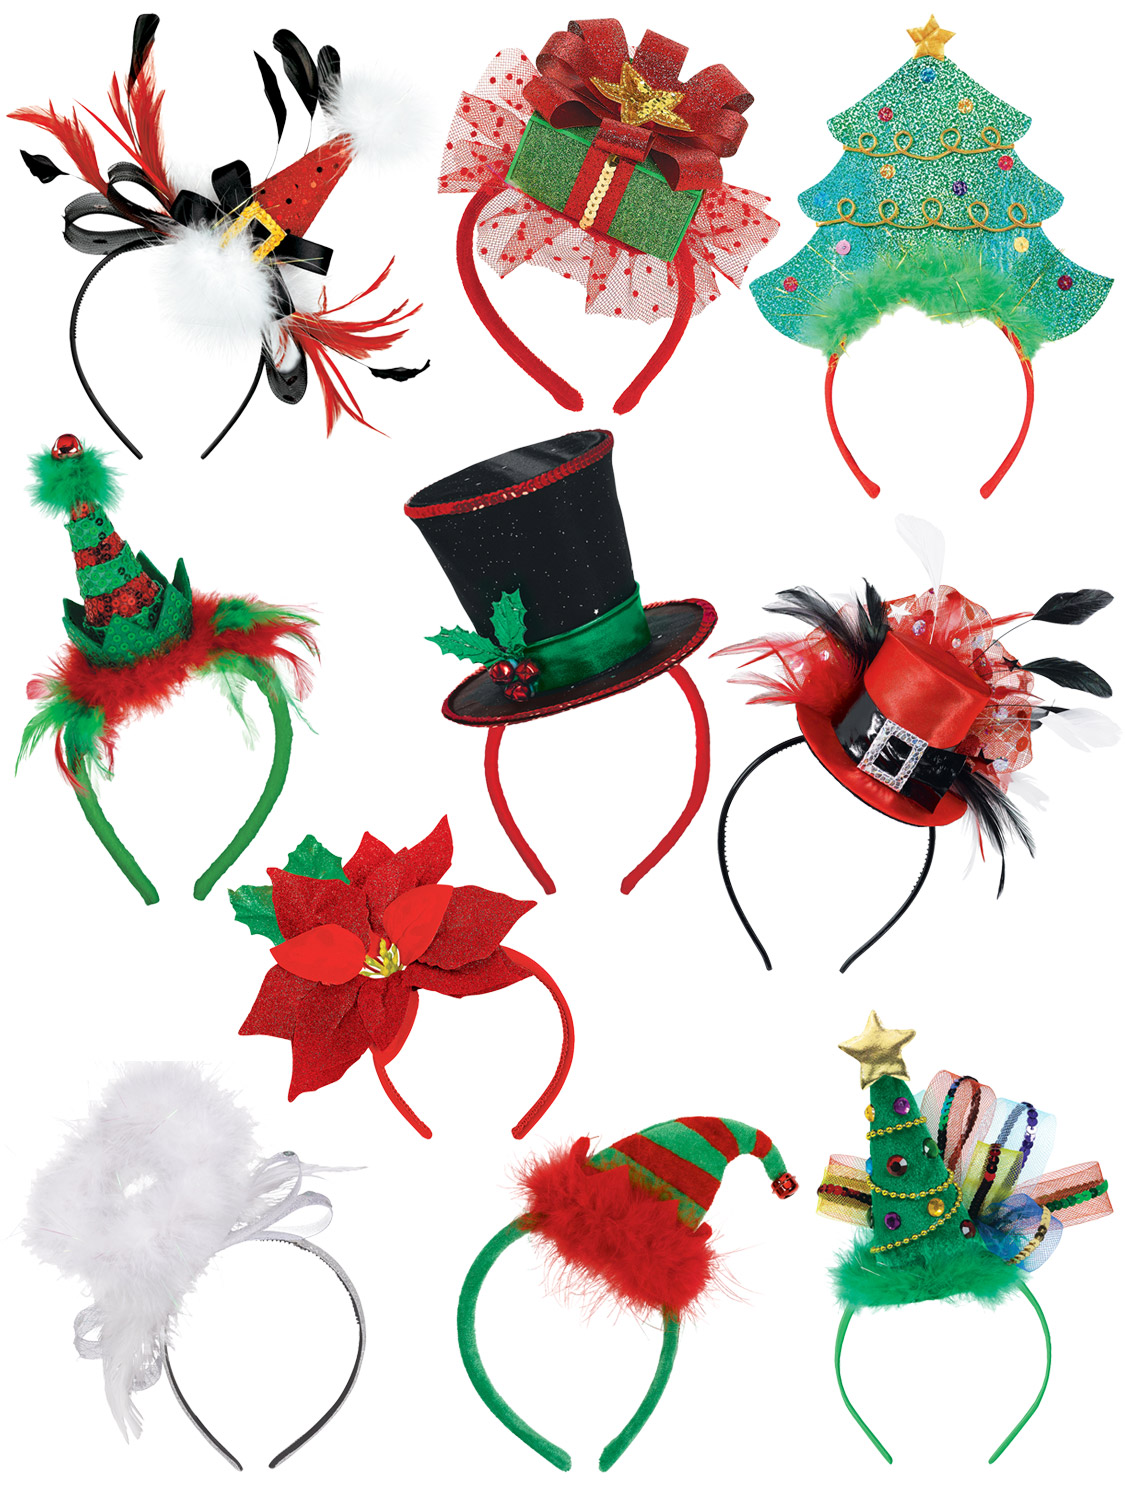 Christmas Headband For Adults.Details About Adults Christmas Mini Hat Headband Ladies Fancy Dress Costume Accessory Xmas